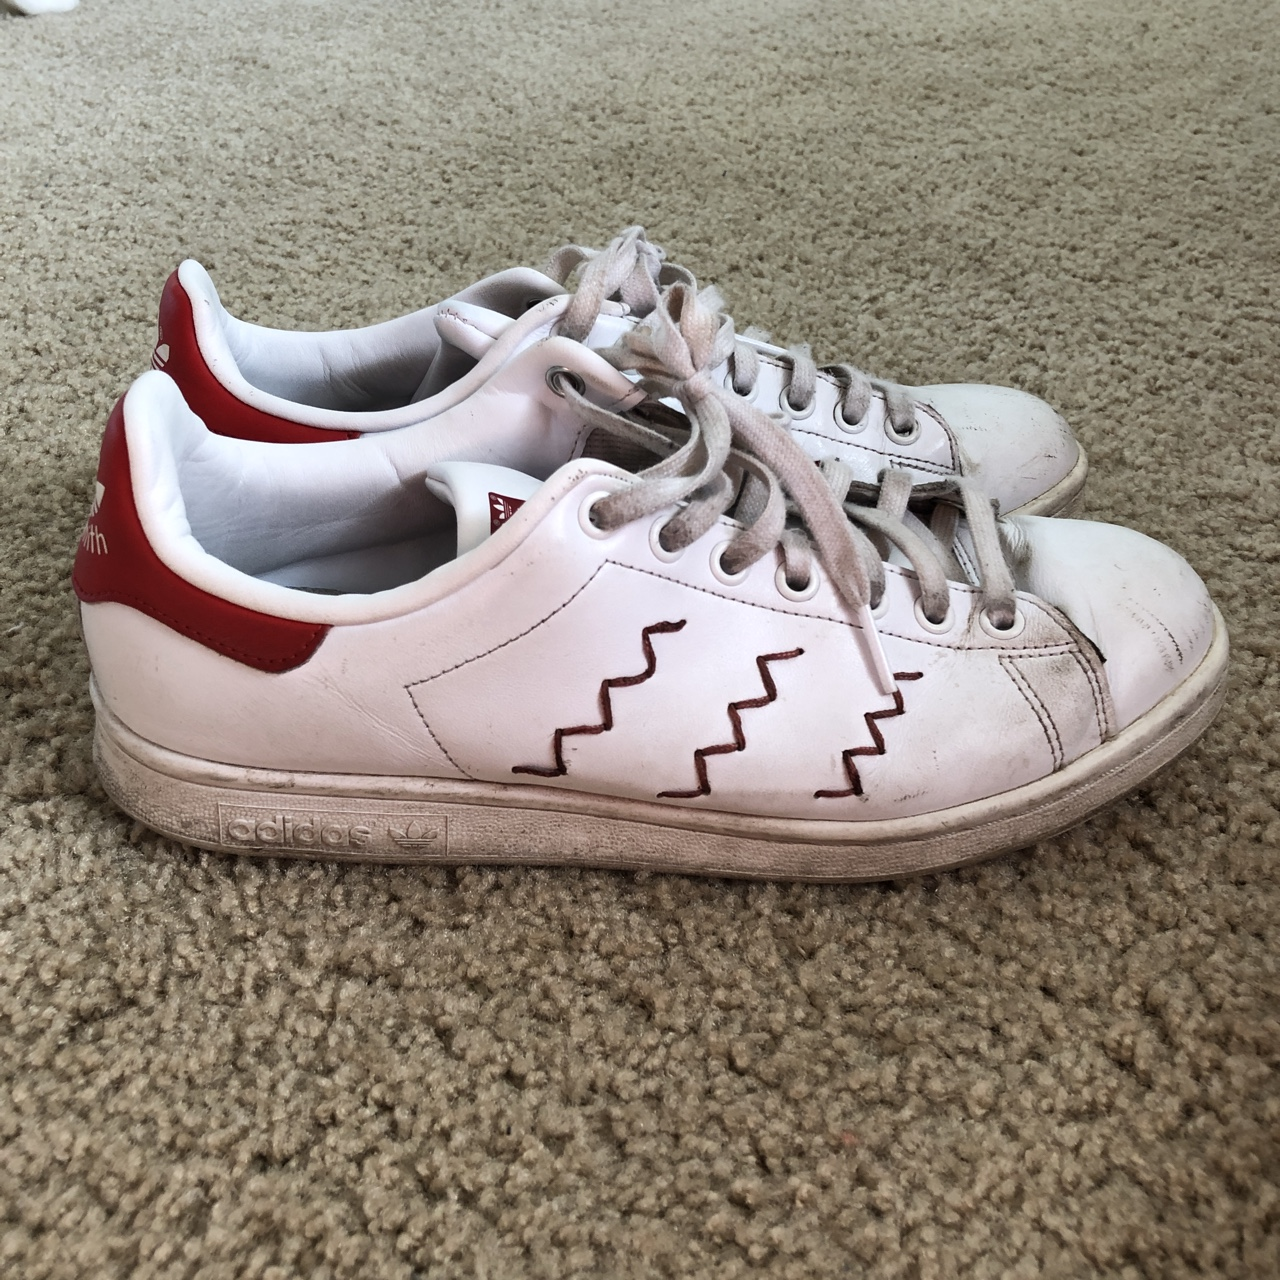 timeless design f67c4 c05a5 Adidas Stan Smith Zig Zag Red Sneakers Says size 9... - Depop